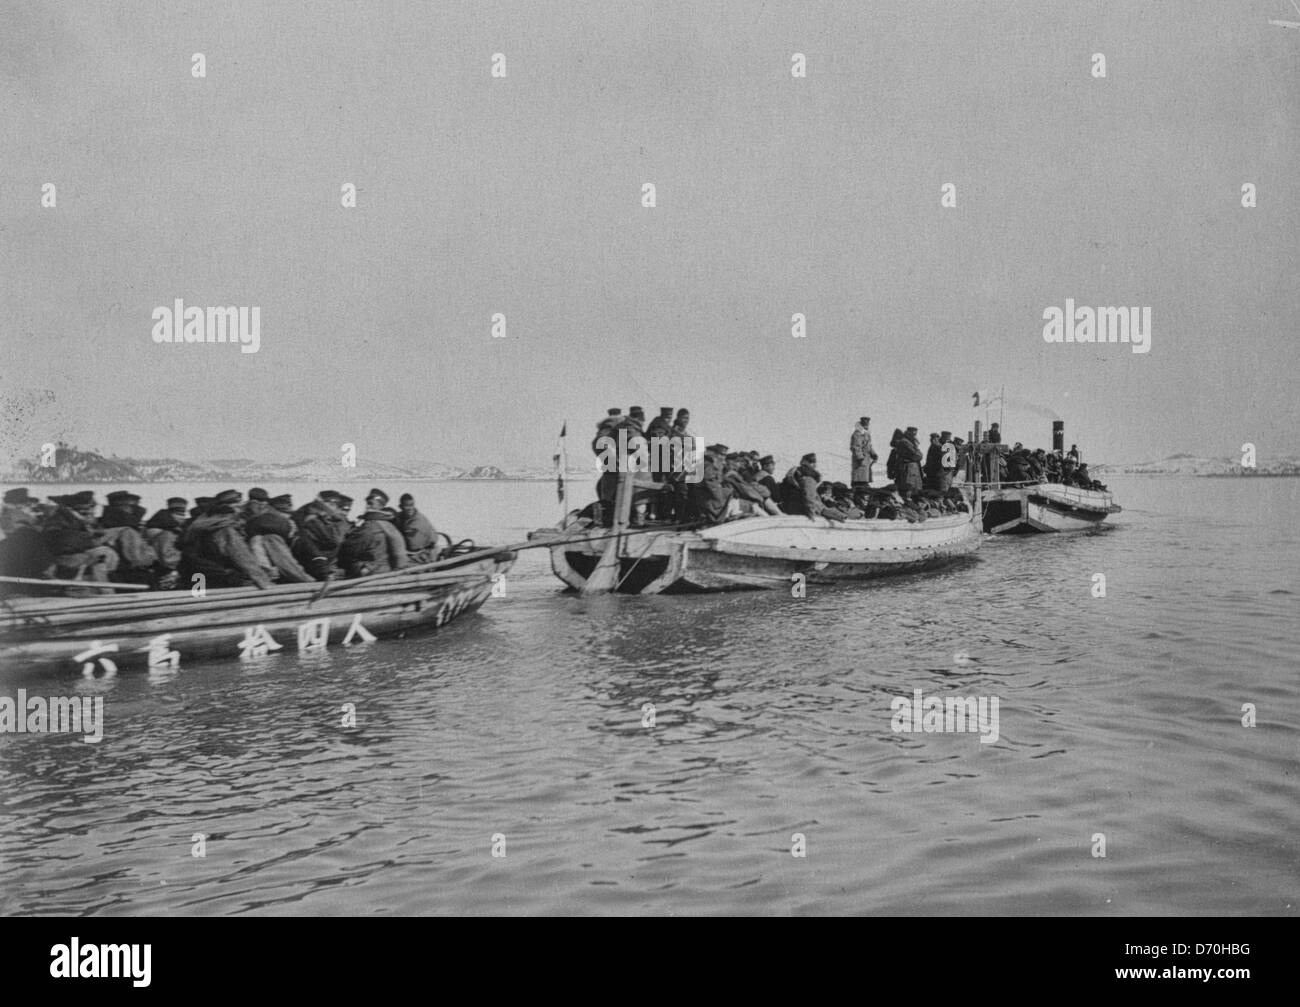 Steam launch carrying six over-crowded boat loads soldiers to landing, Chemulpo, Korea, during the Russo Japanese - Stock Image